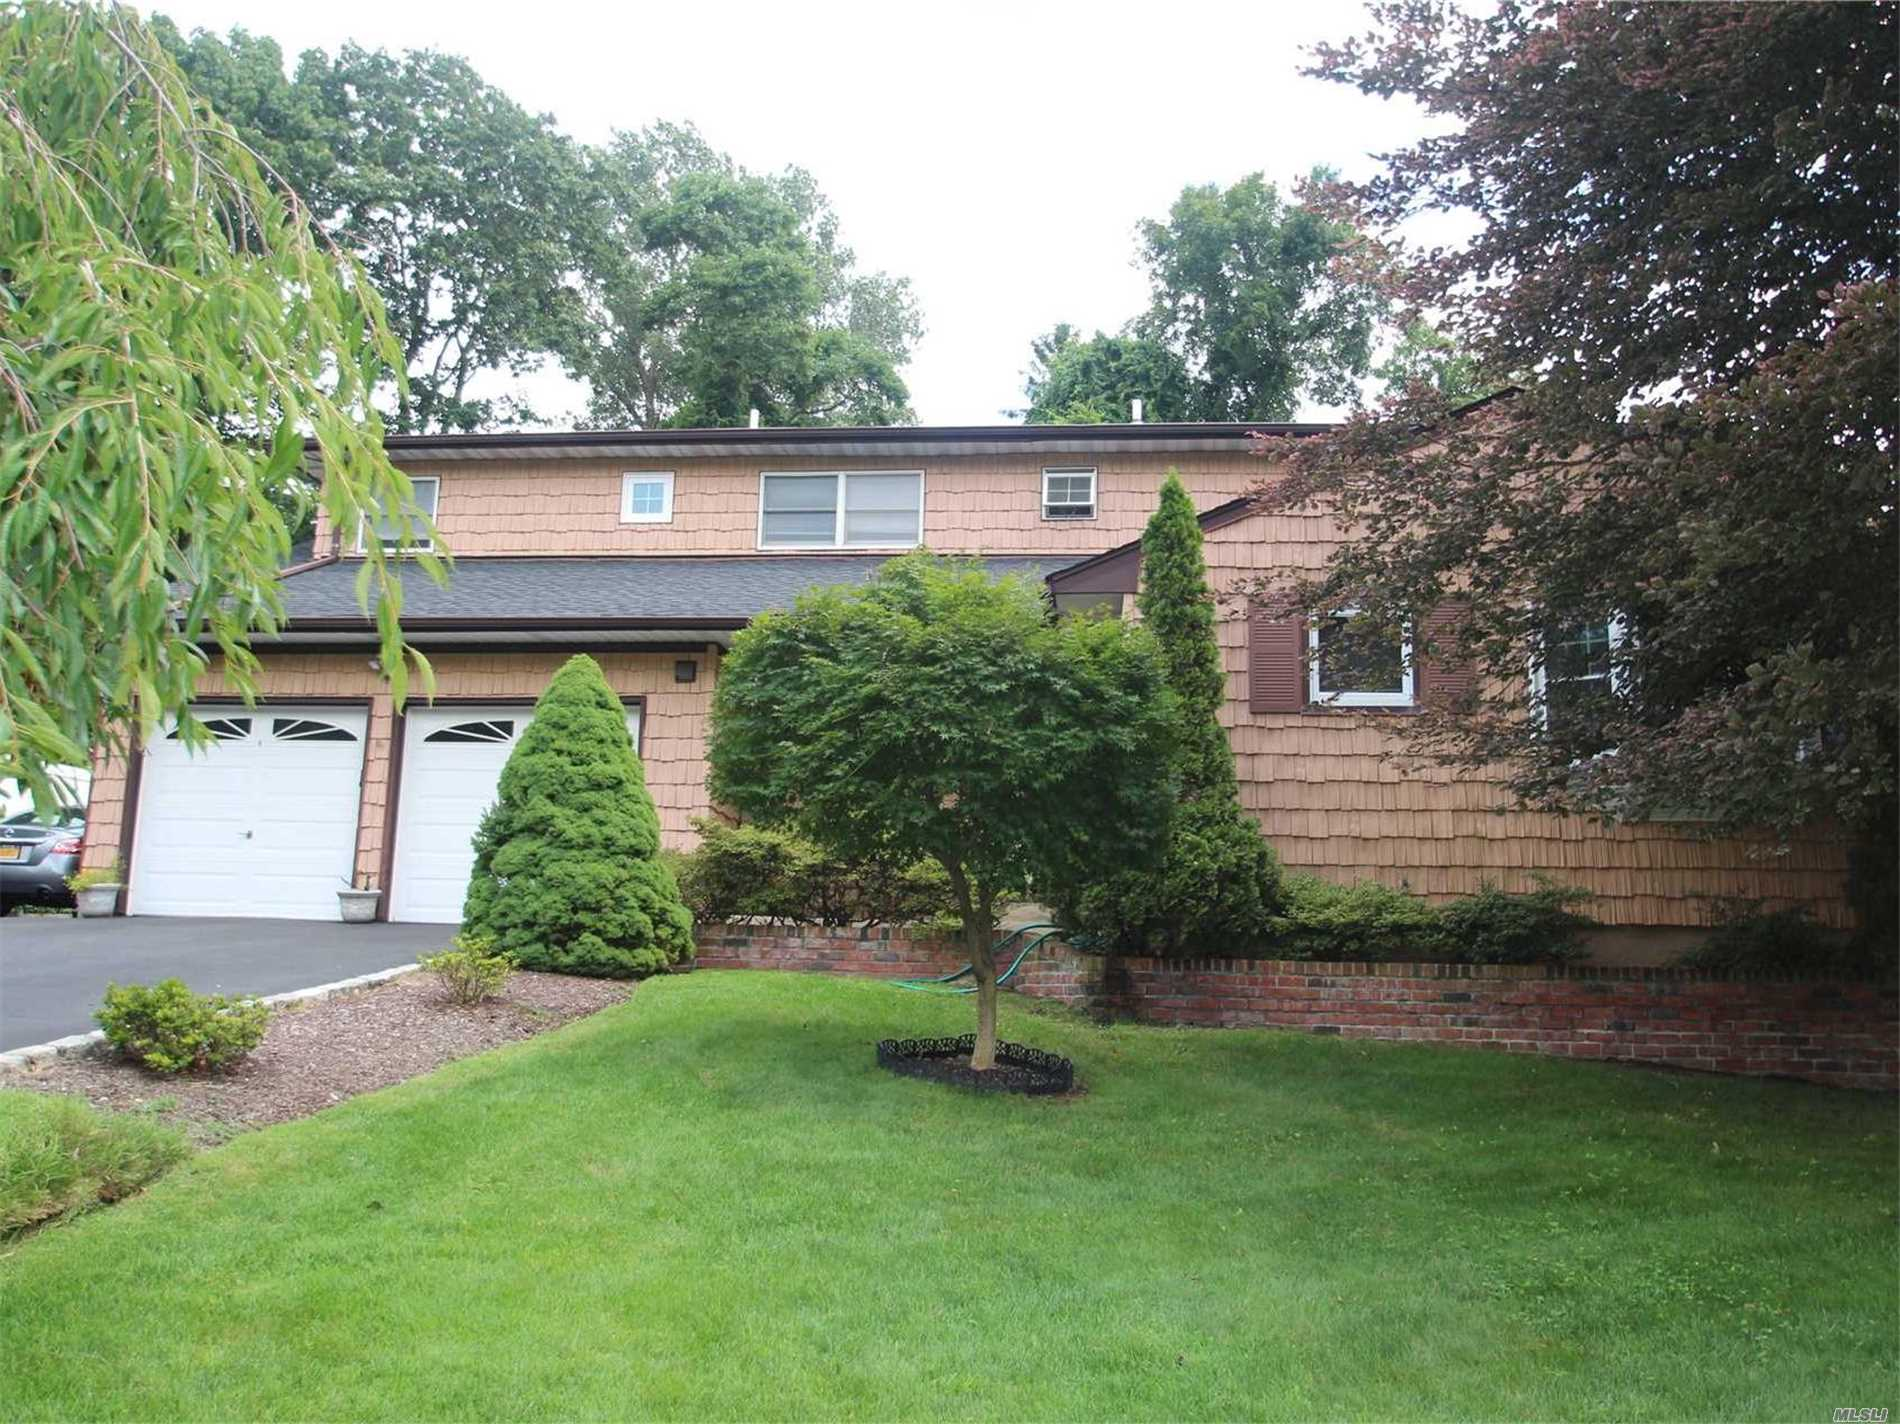 Back On The Market! Don't Miss This Excepcional Colonial On Cul-De-Sac. Posible Mother Daughter W/Proper Permits. Updates Include Kitchen, Roof, 2 Baths And Finished Basement, Secluded Yard Perfect For Entertain. Living R W/Fireplace And Sliders To Yard . Close To Sunken Meadow Park Beaches, Sshops And Railroad